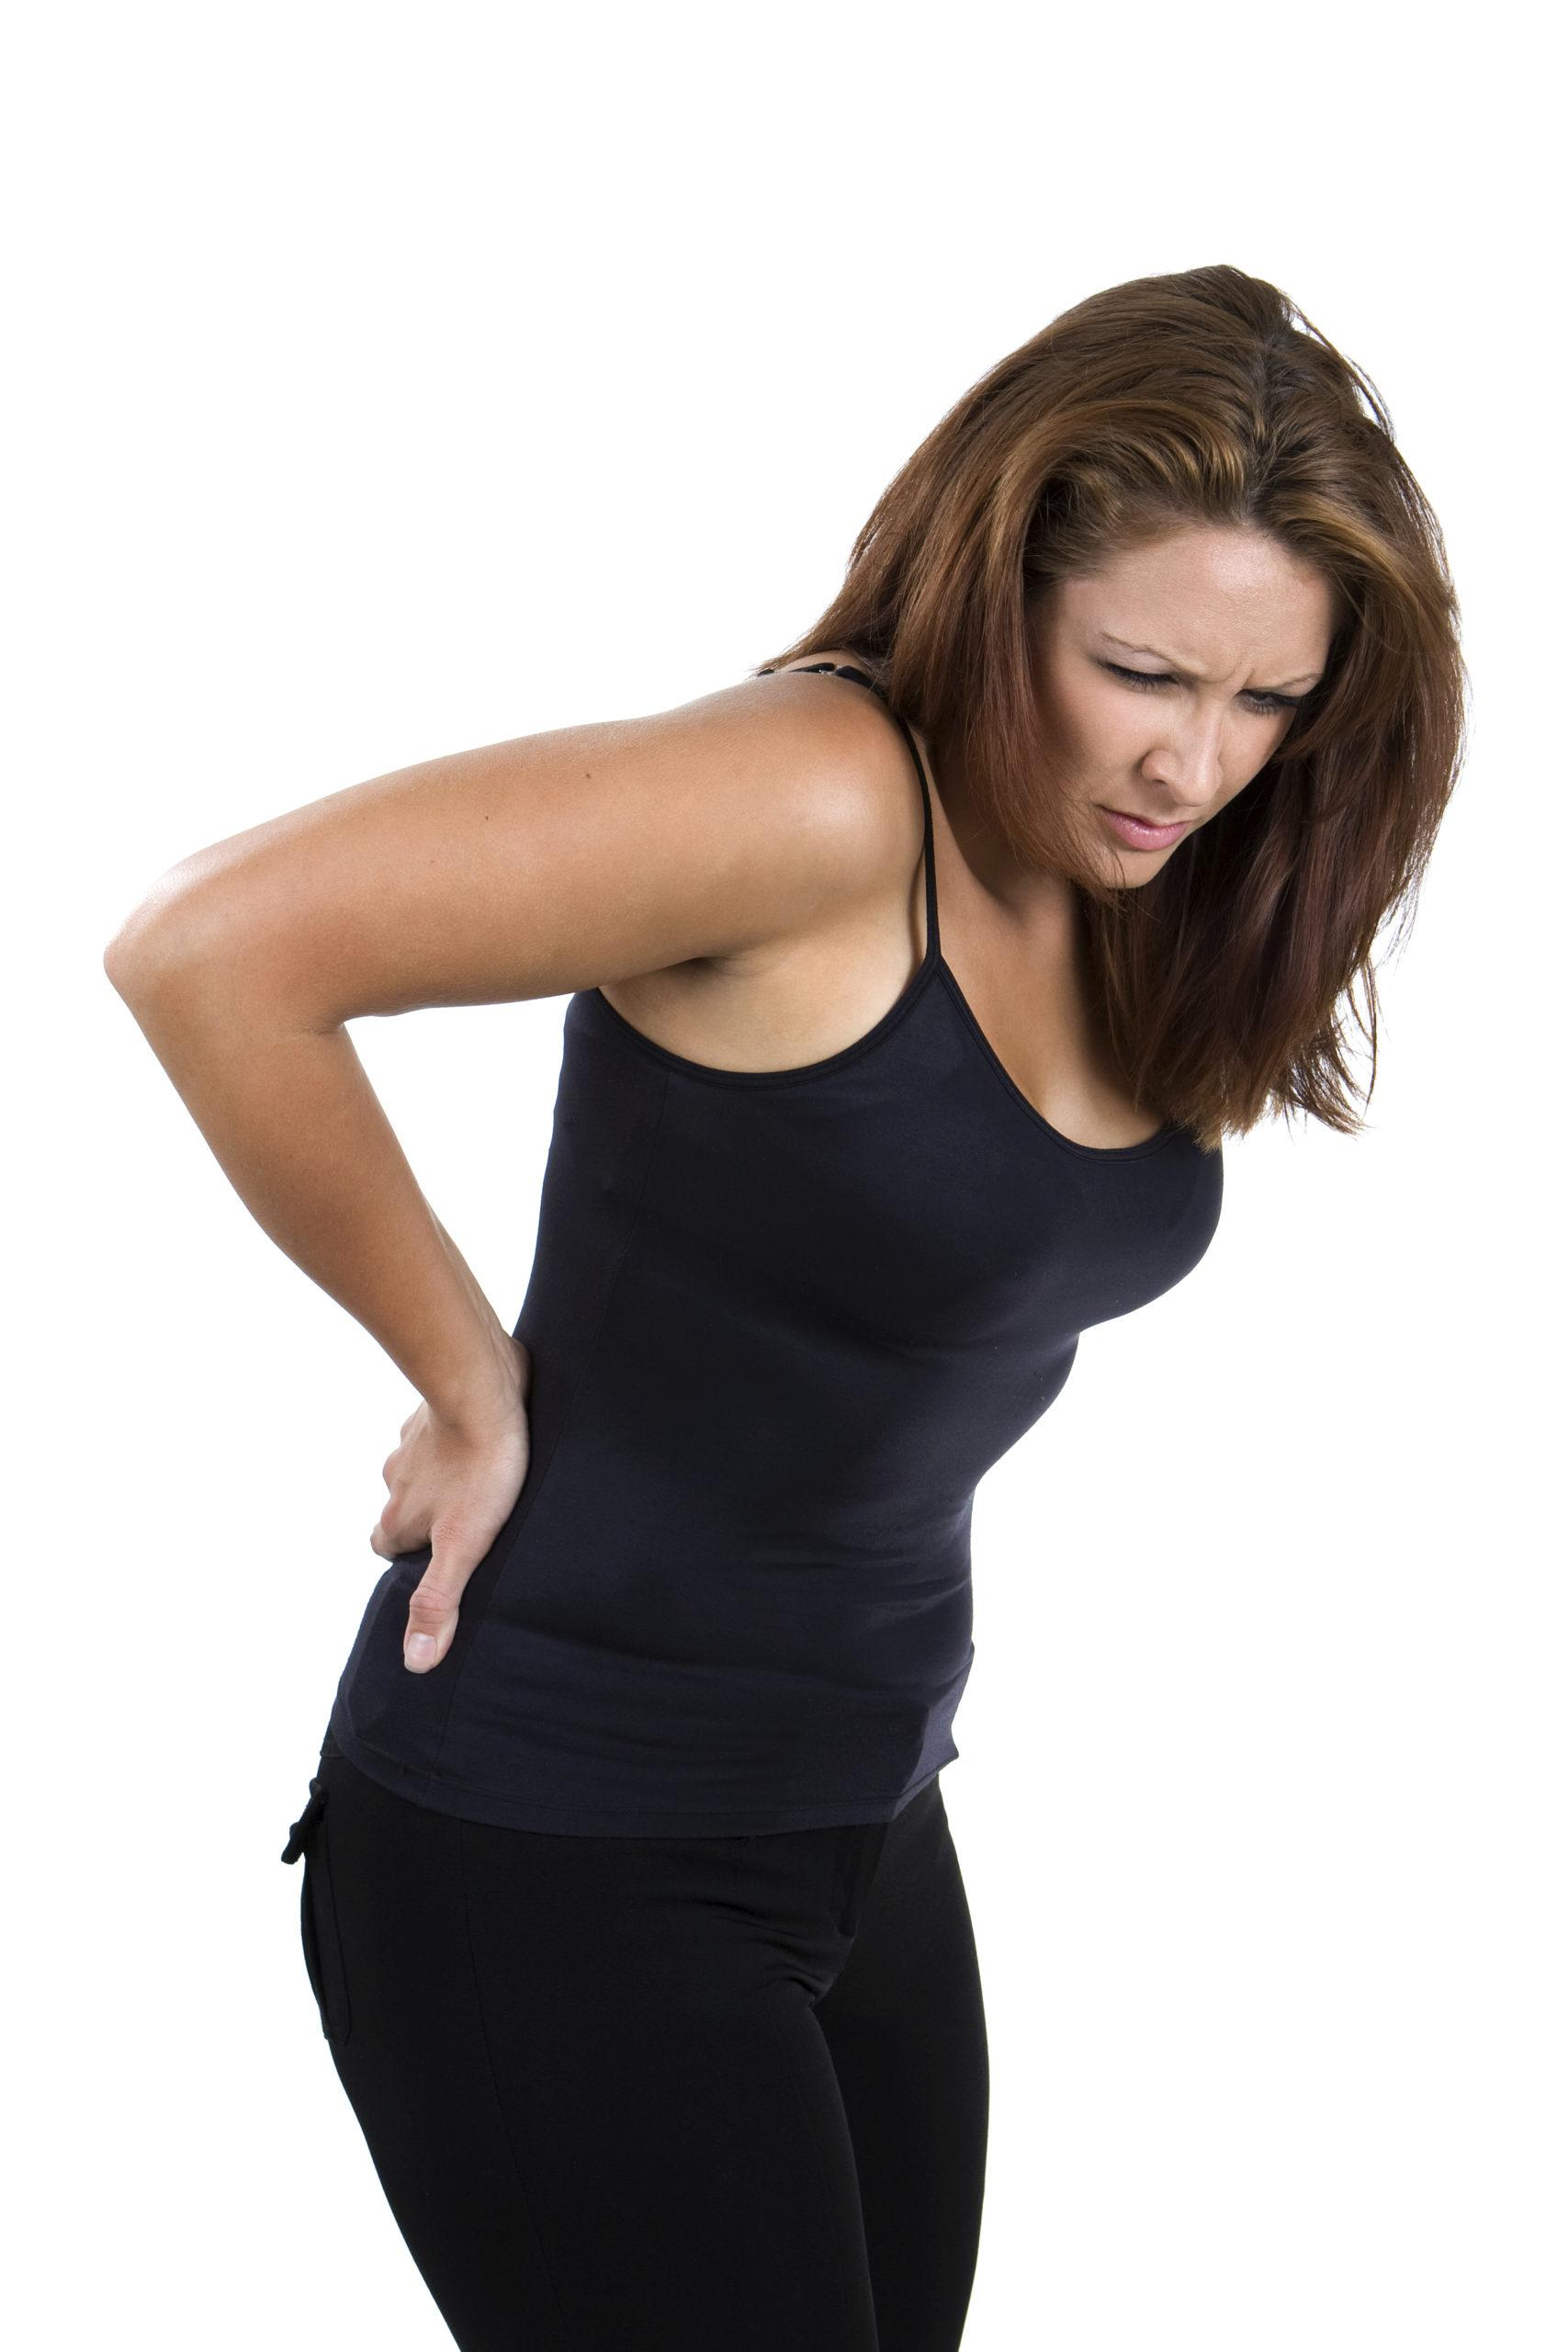 Common Symptoms of Untreated Whiplash! - image womanlowback-scaled on https://www.drlisaowen.com